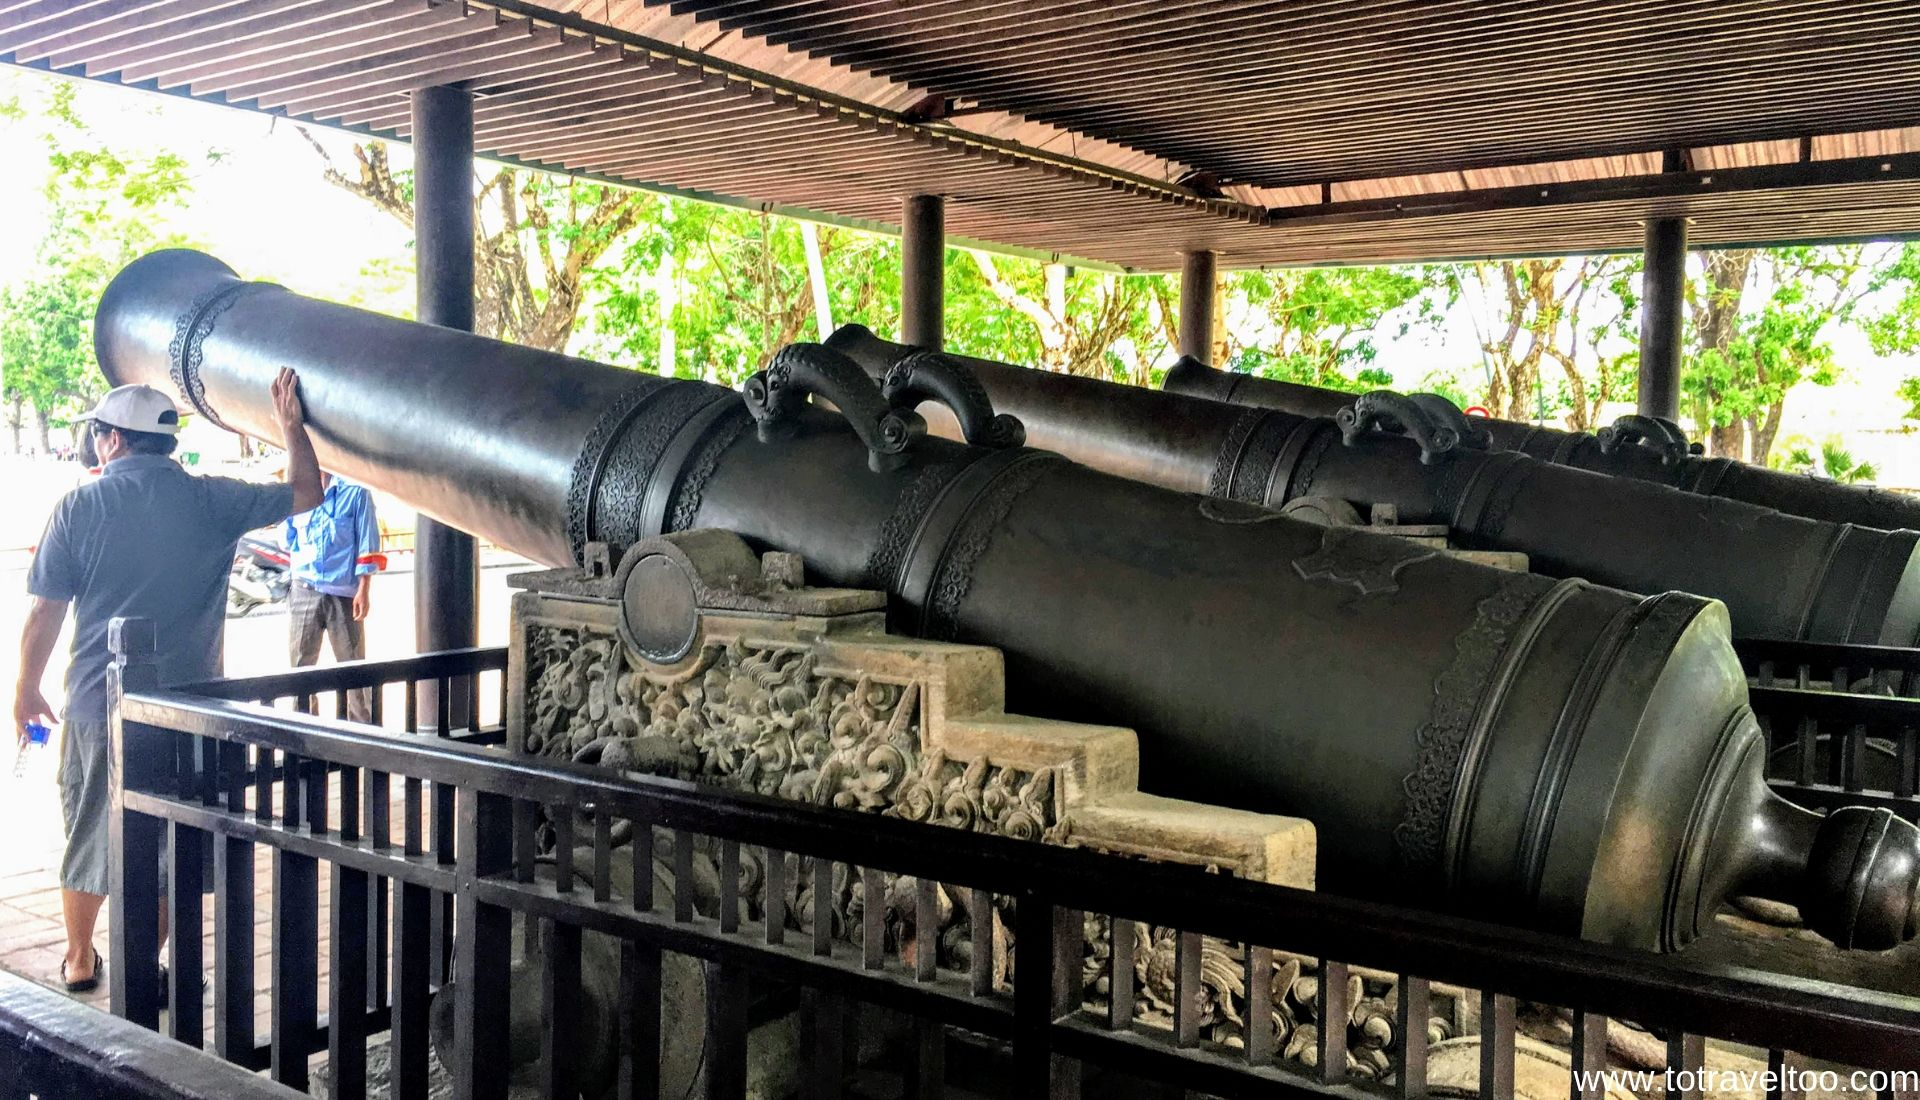 Nine Holy Cannons